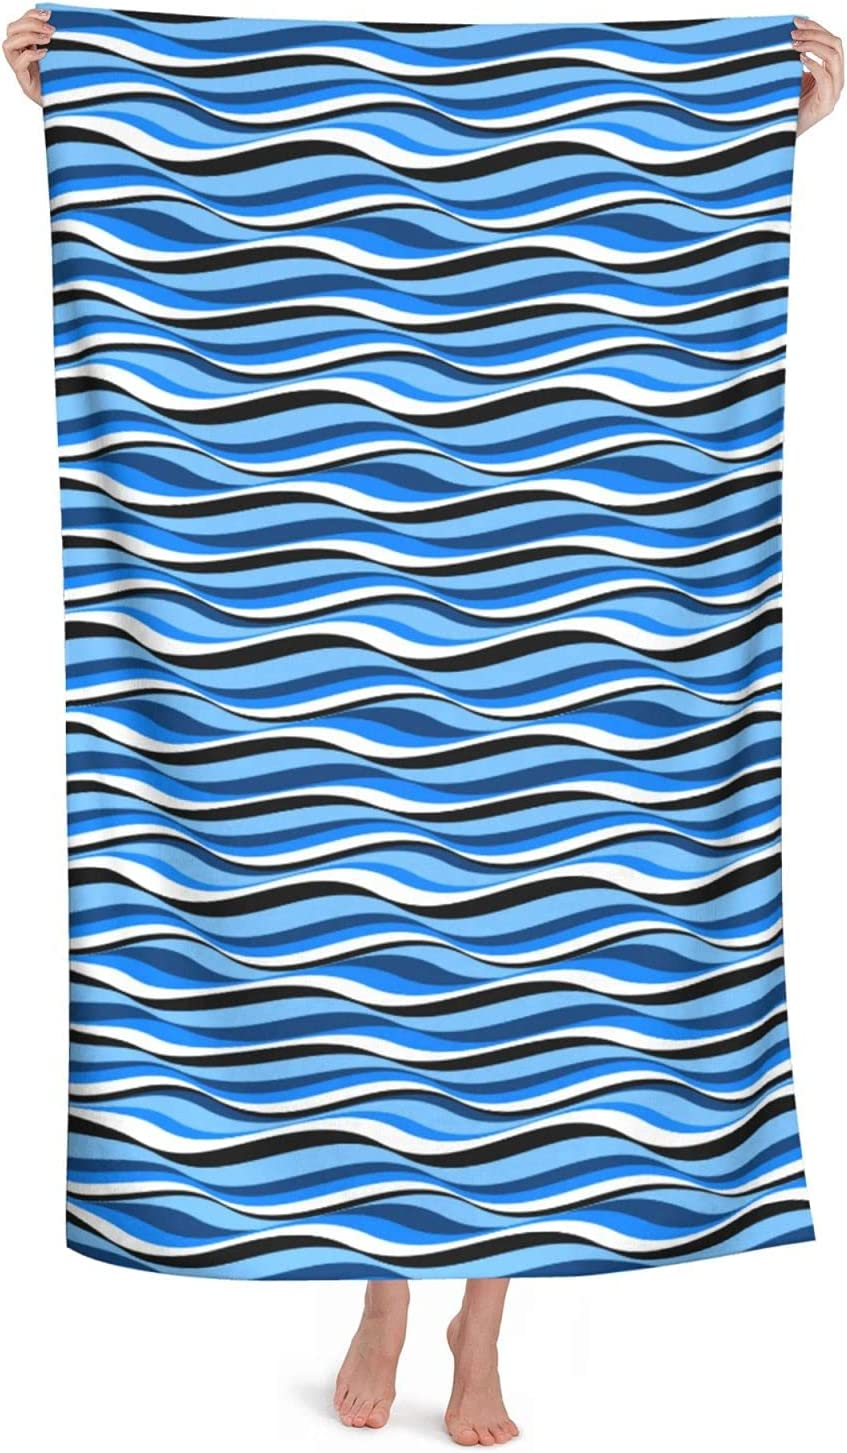 Blue Sea Wave Soft Bathroom Microfiber Highly Manufacturer regenerated product Washcloth Towels Quality inspection